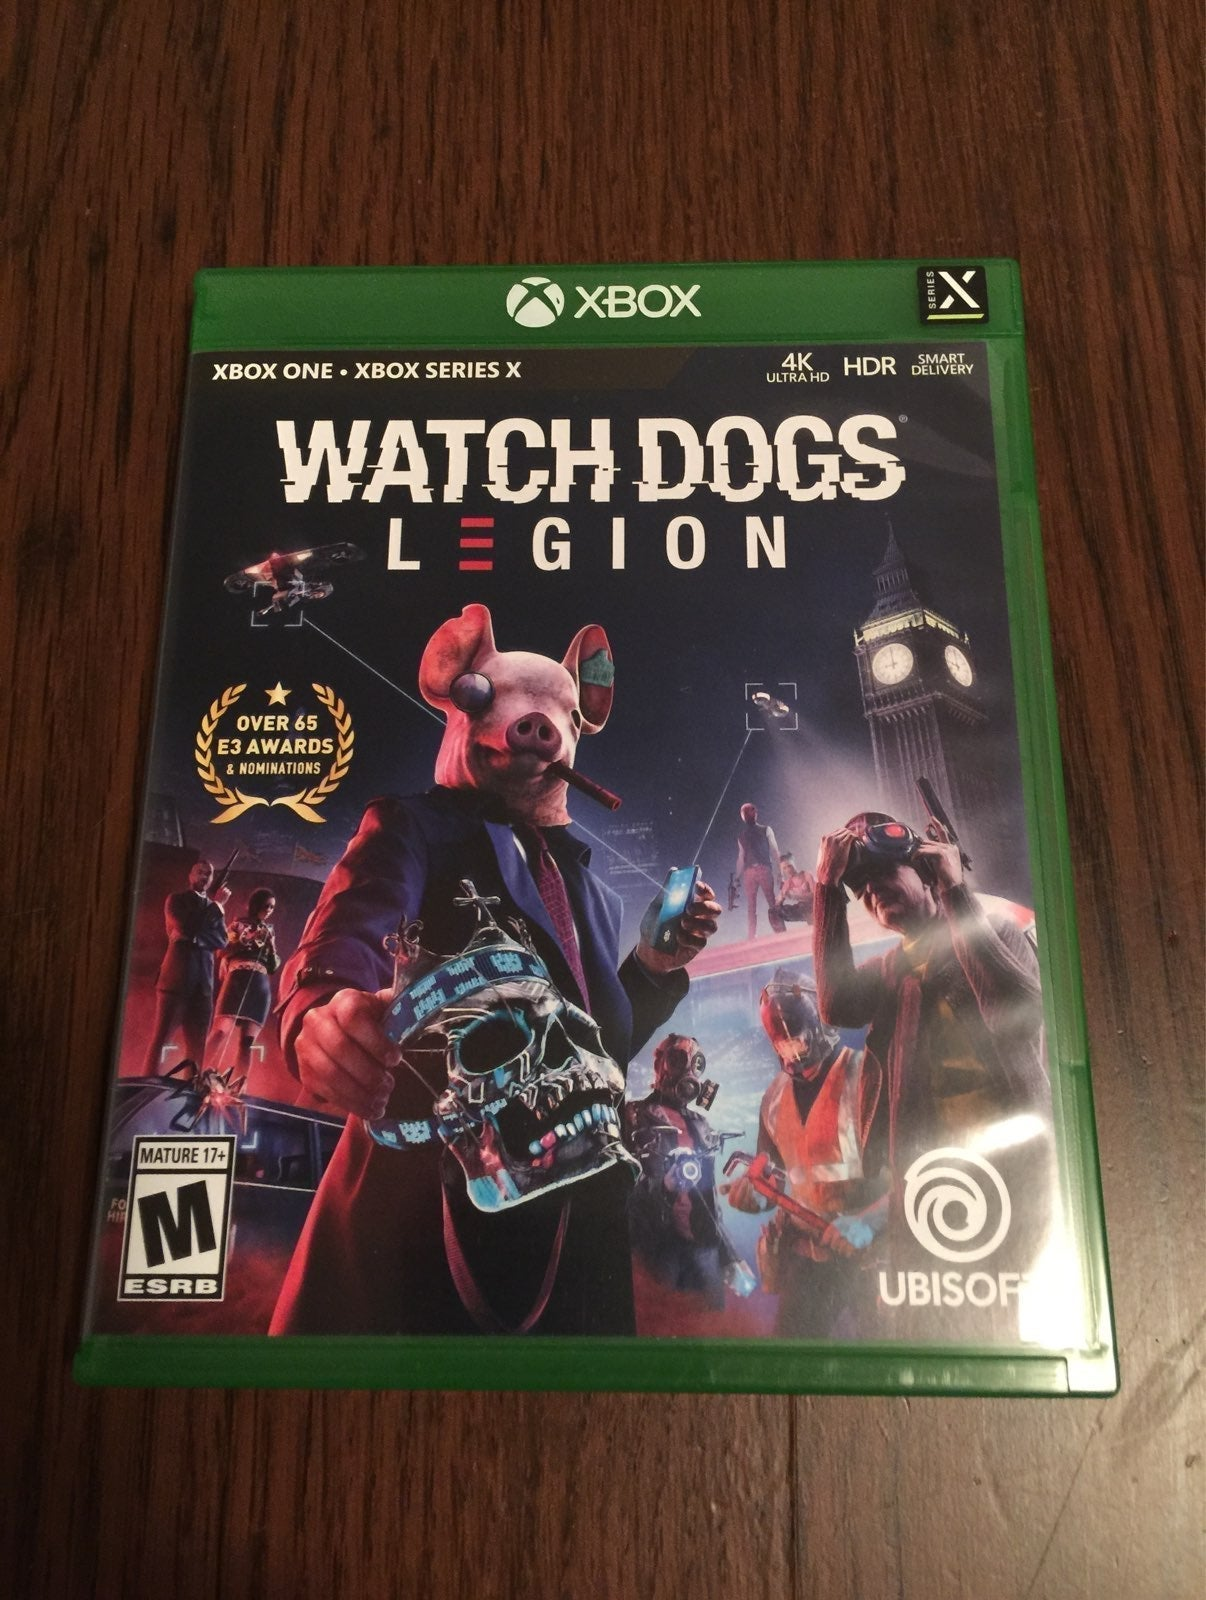 Watch Dogs Legion on Xbox Series X/S and